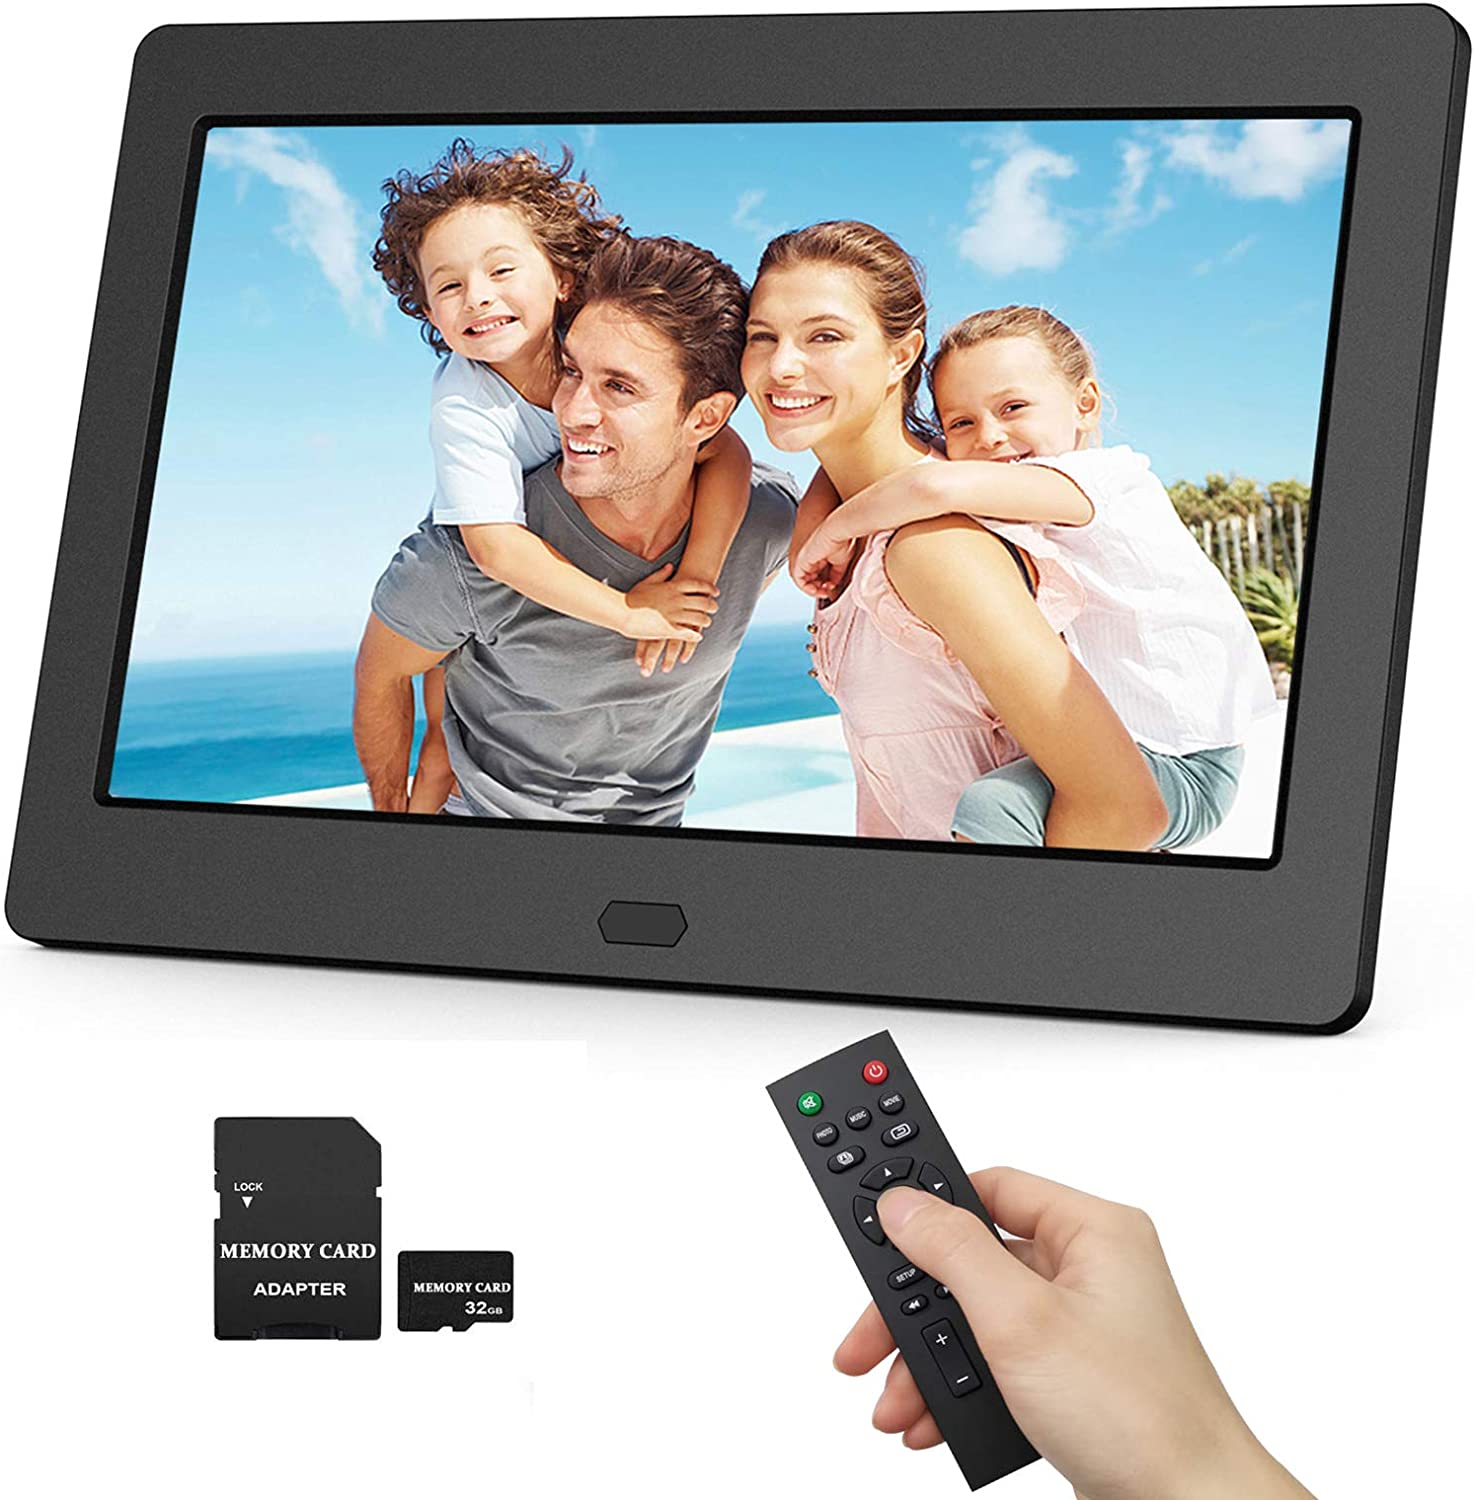 White HD Digital Picture Frame 12.5 Inch HD 19201080 IPS LCD Screen Multifunctional Photo Video Frame With Wireless Remote View Pictures//Music//Video,Support SD//MMC//USB Model: AD127